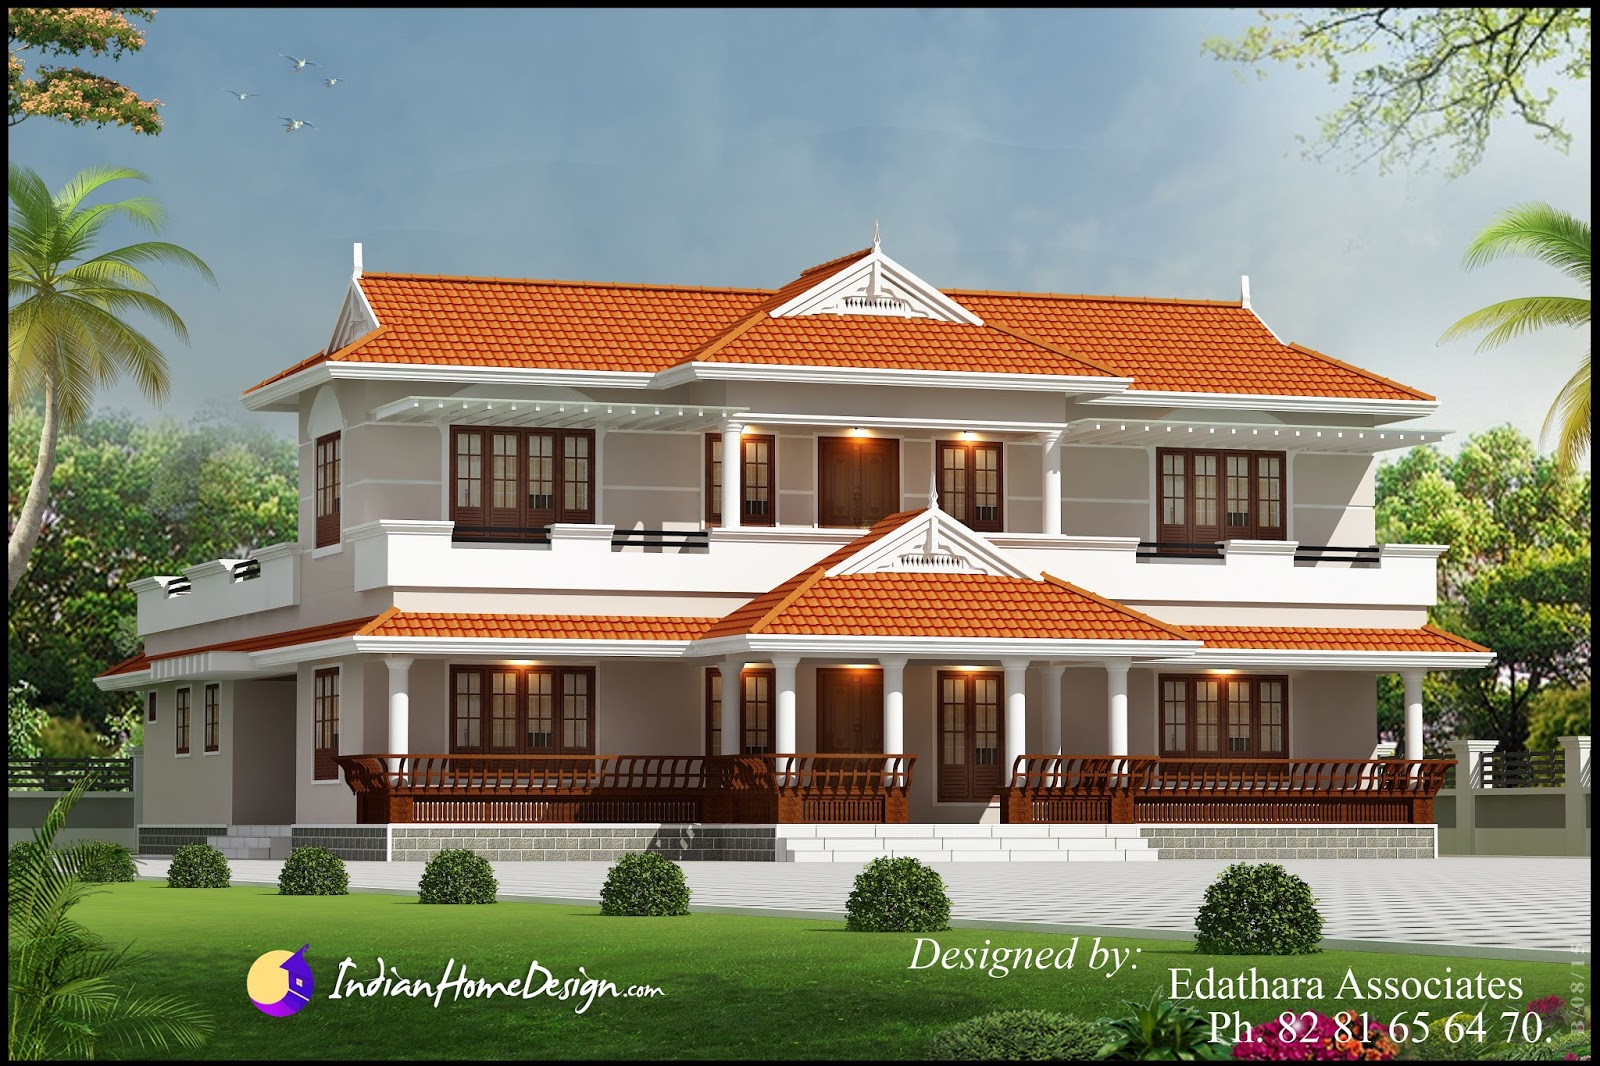 Modular Kerala Style 2288 Sqft Villa Design Traditional Double Floor Kerala for Kerala Traditional House Plans With Photos